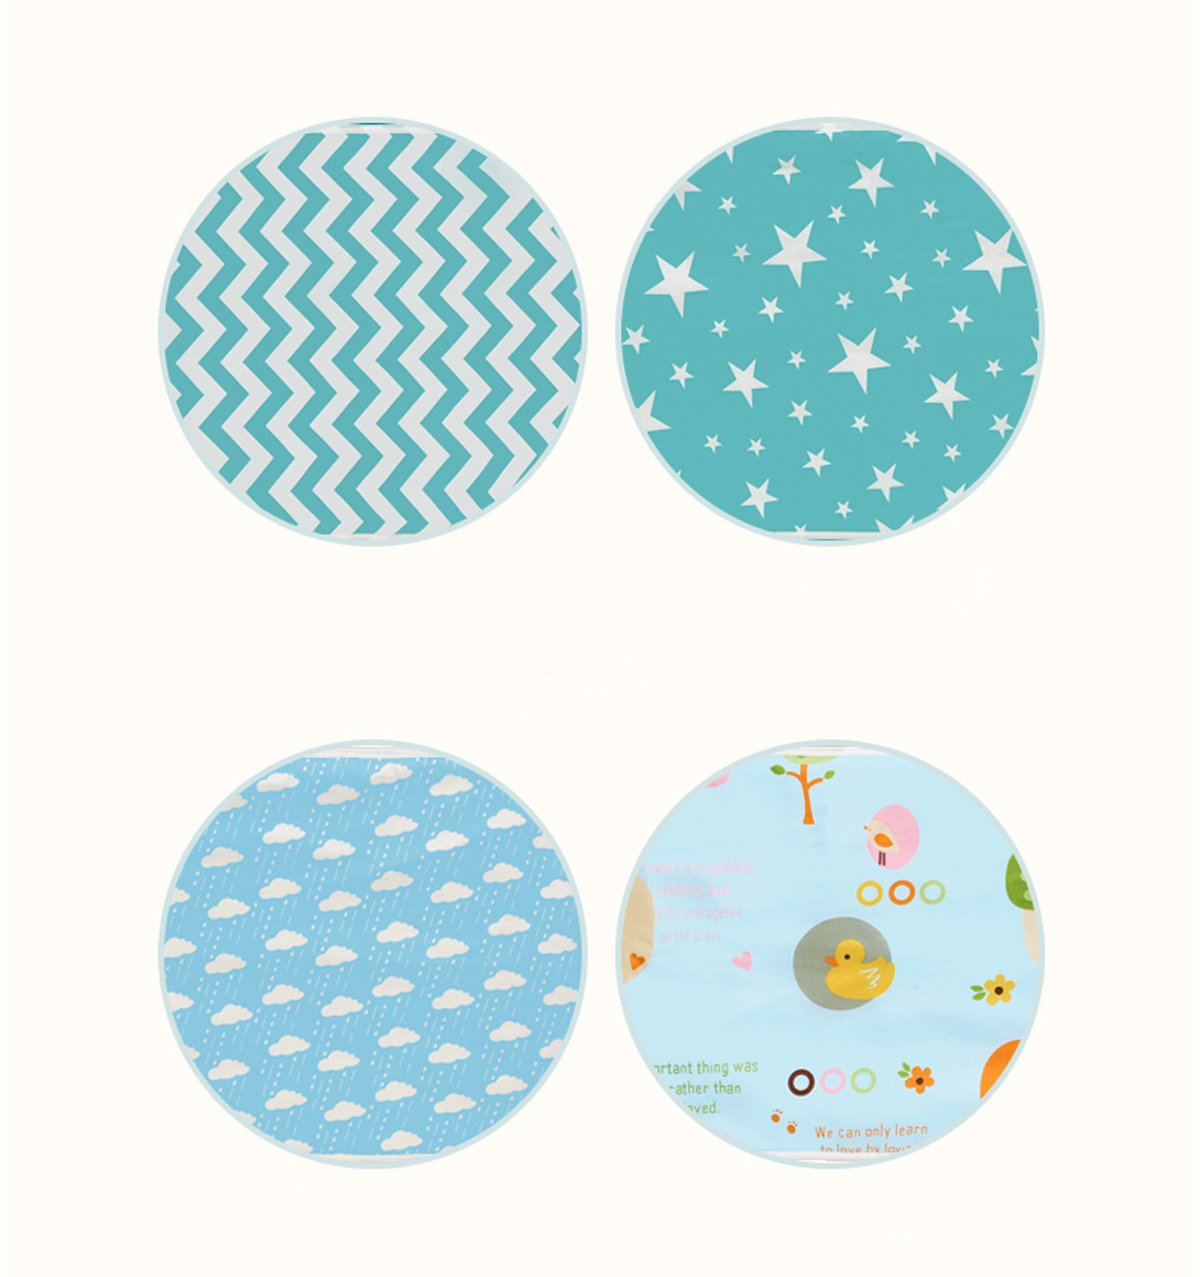 KIDSONE Portable Baby Diaper Changing Pad A, 35x45cm Breathable Waterproof Underpads Changing Mat for Baby Boys Girls